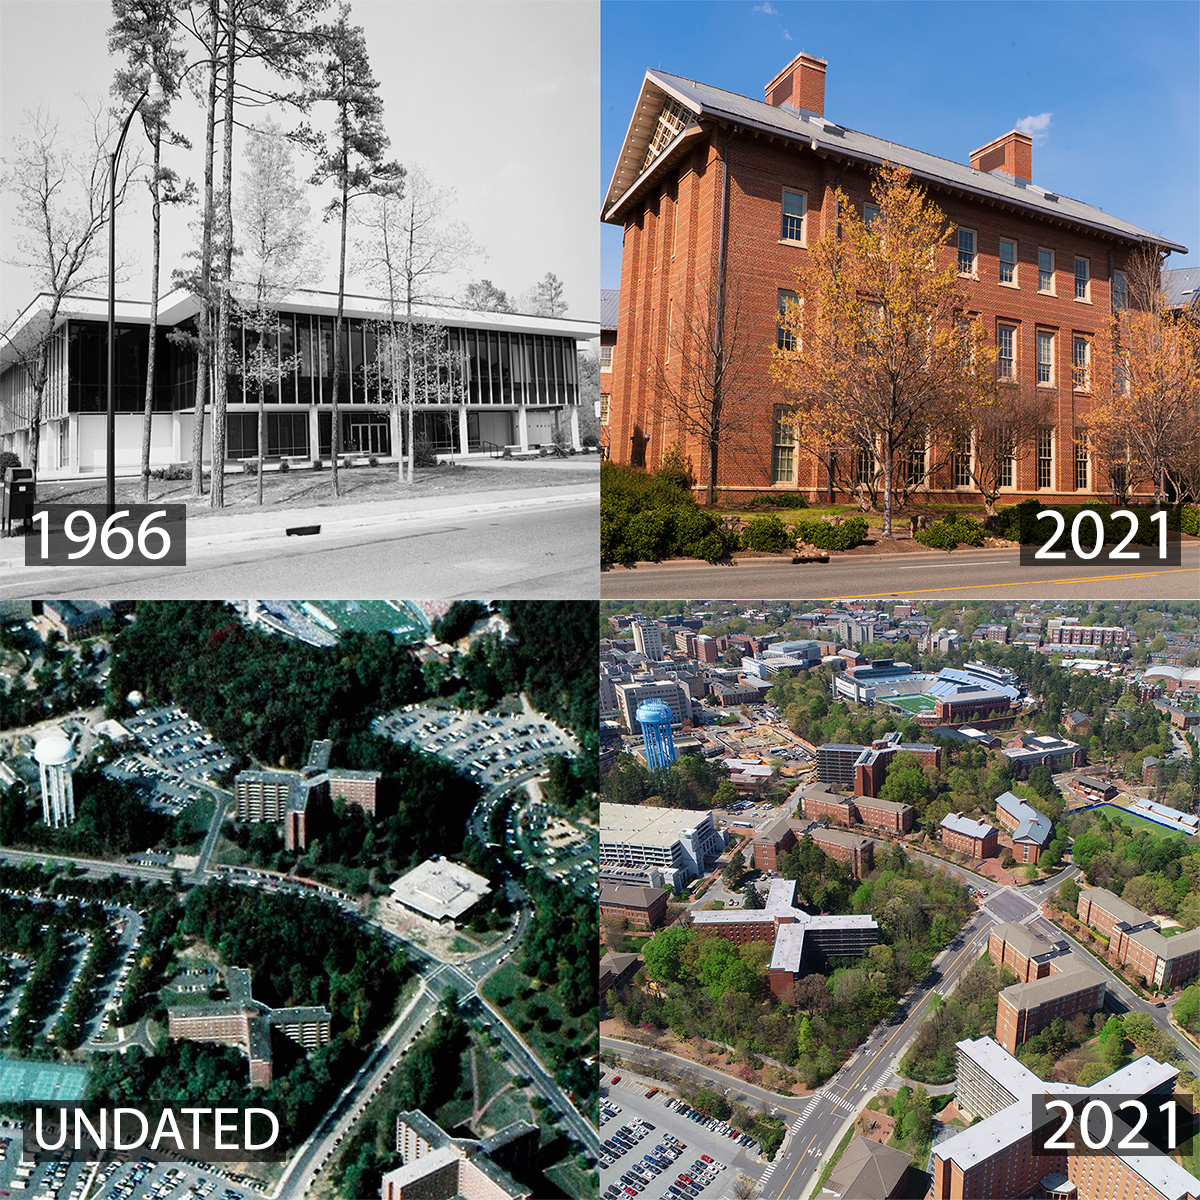 A montage of photos, including Chase Dinining hall in 1966 and 2021.